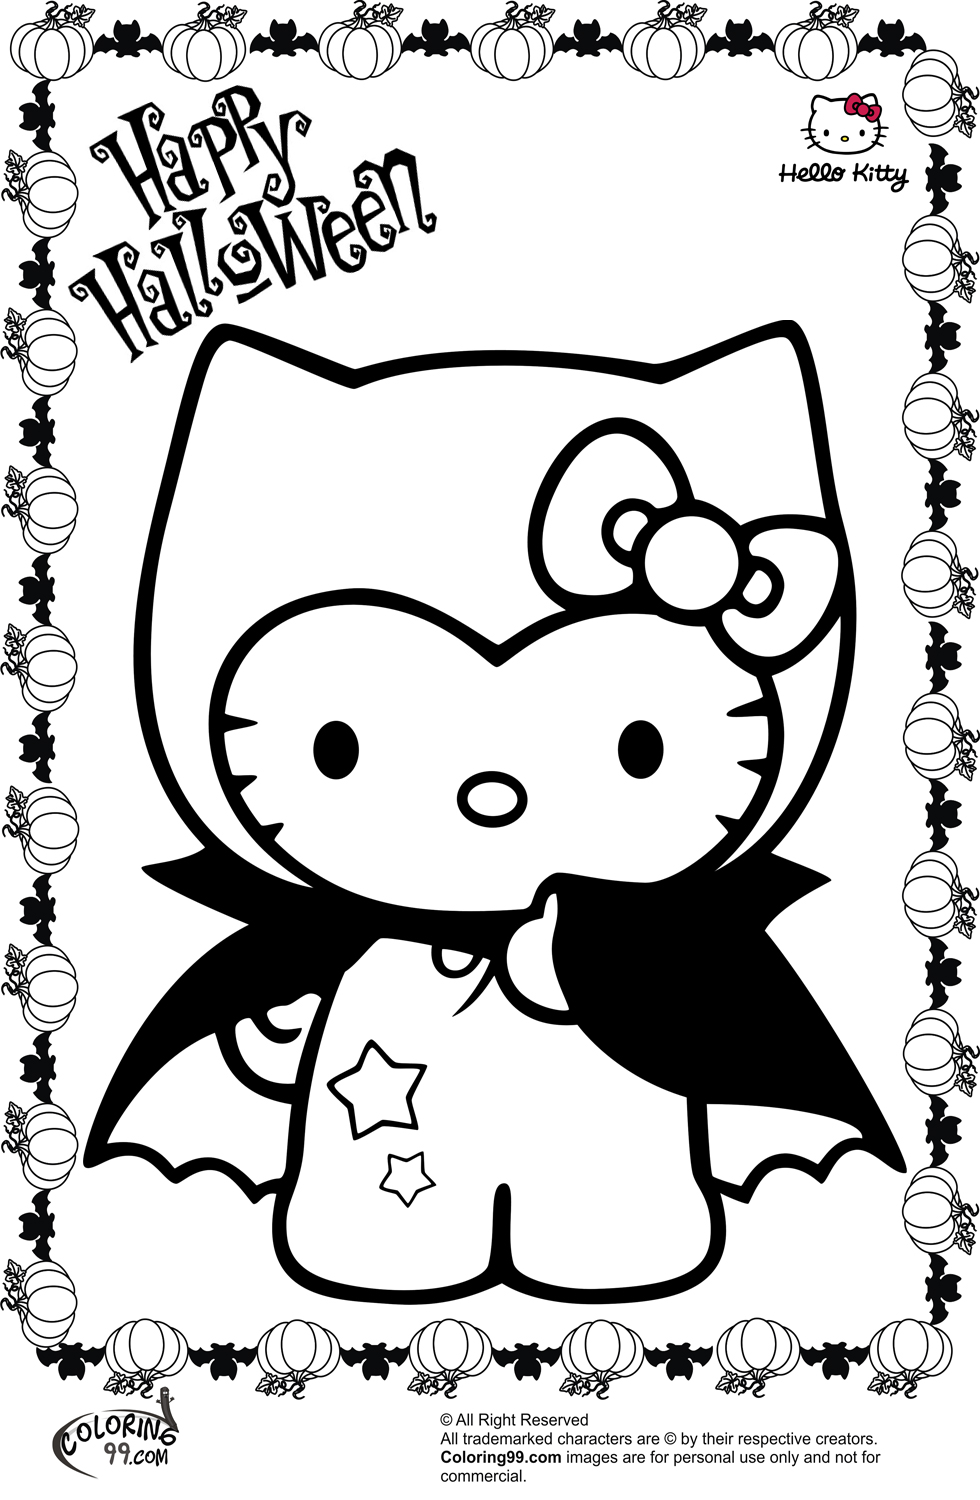 hello kitty halloween coloring pages october 2013 team colors kitty coloring pages hello halloween